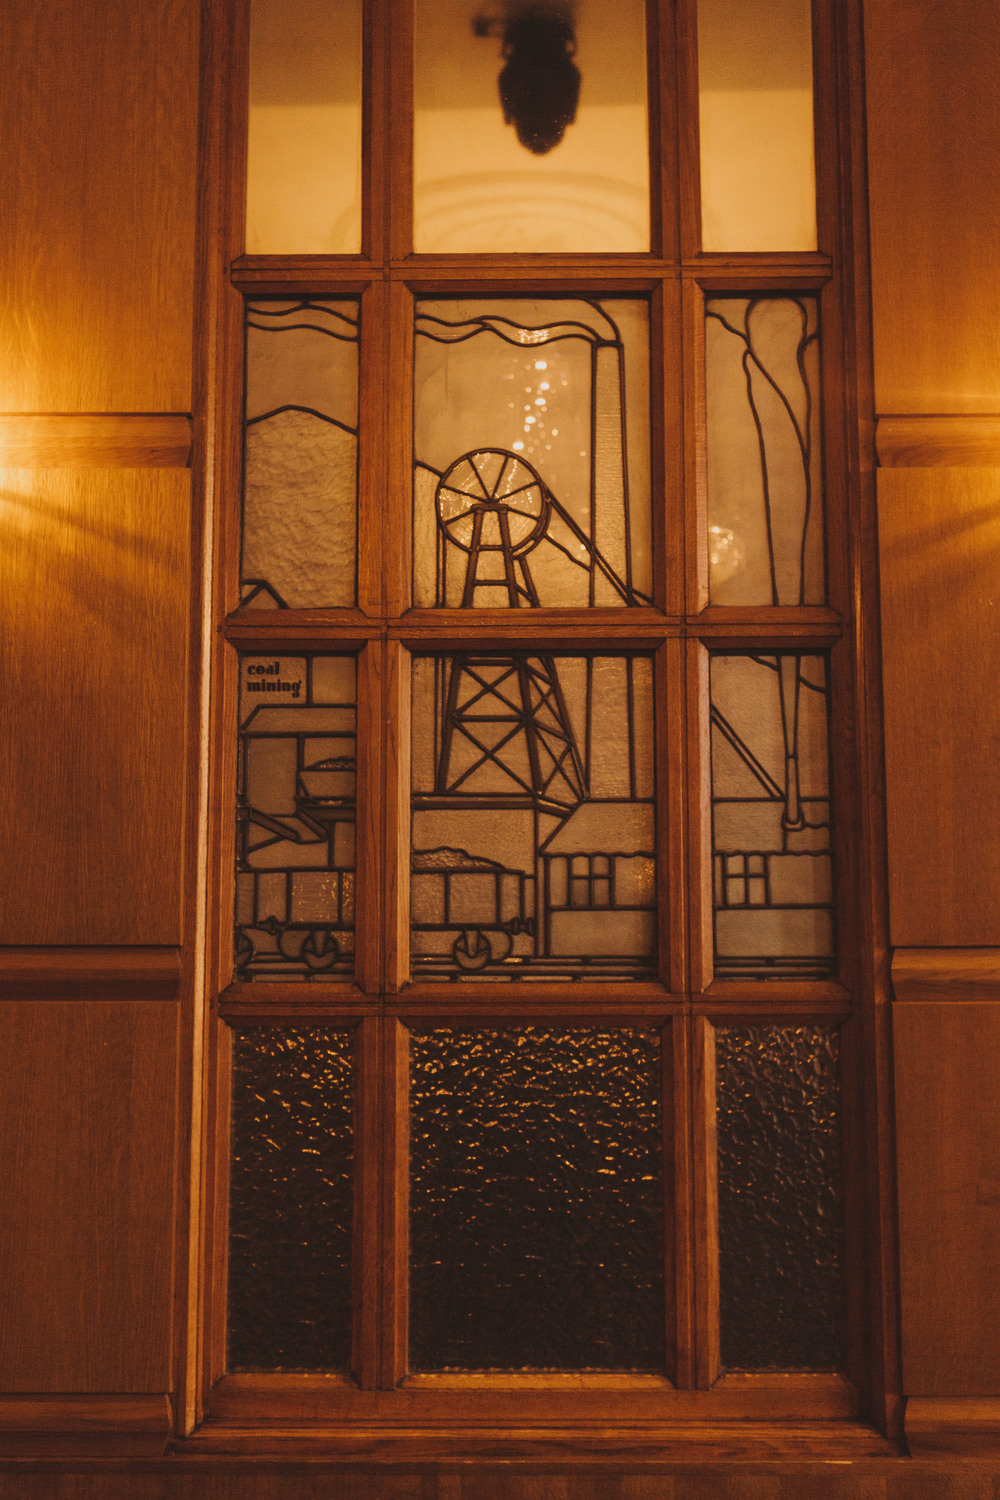 Oak panelling and art deco window in The Ballroom at The Vermont Hotel